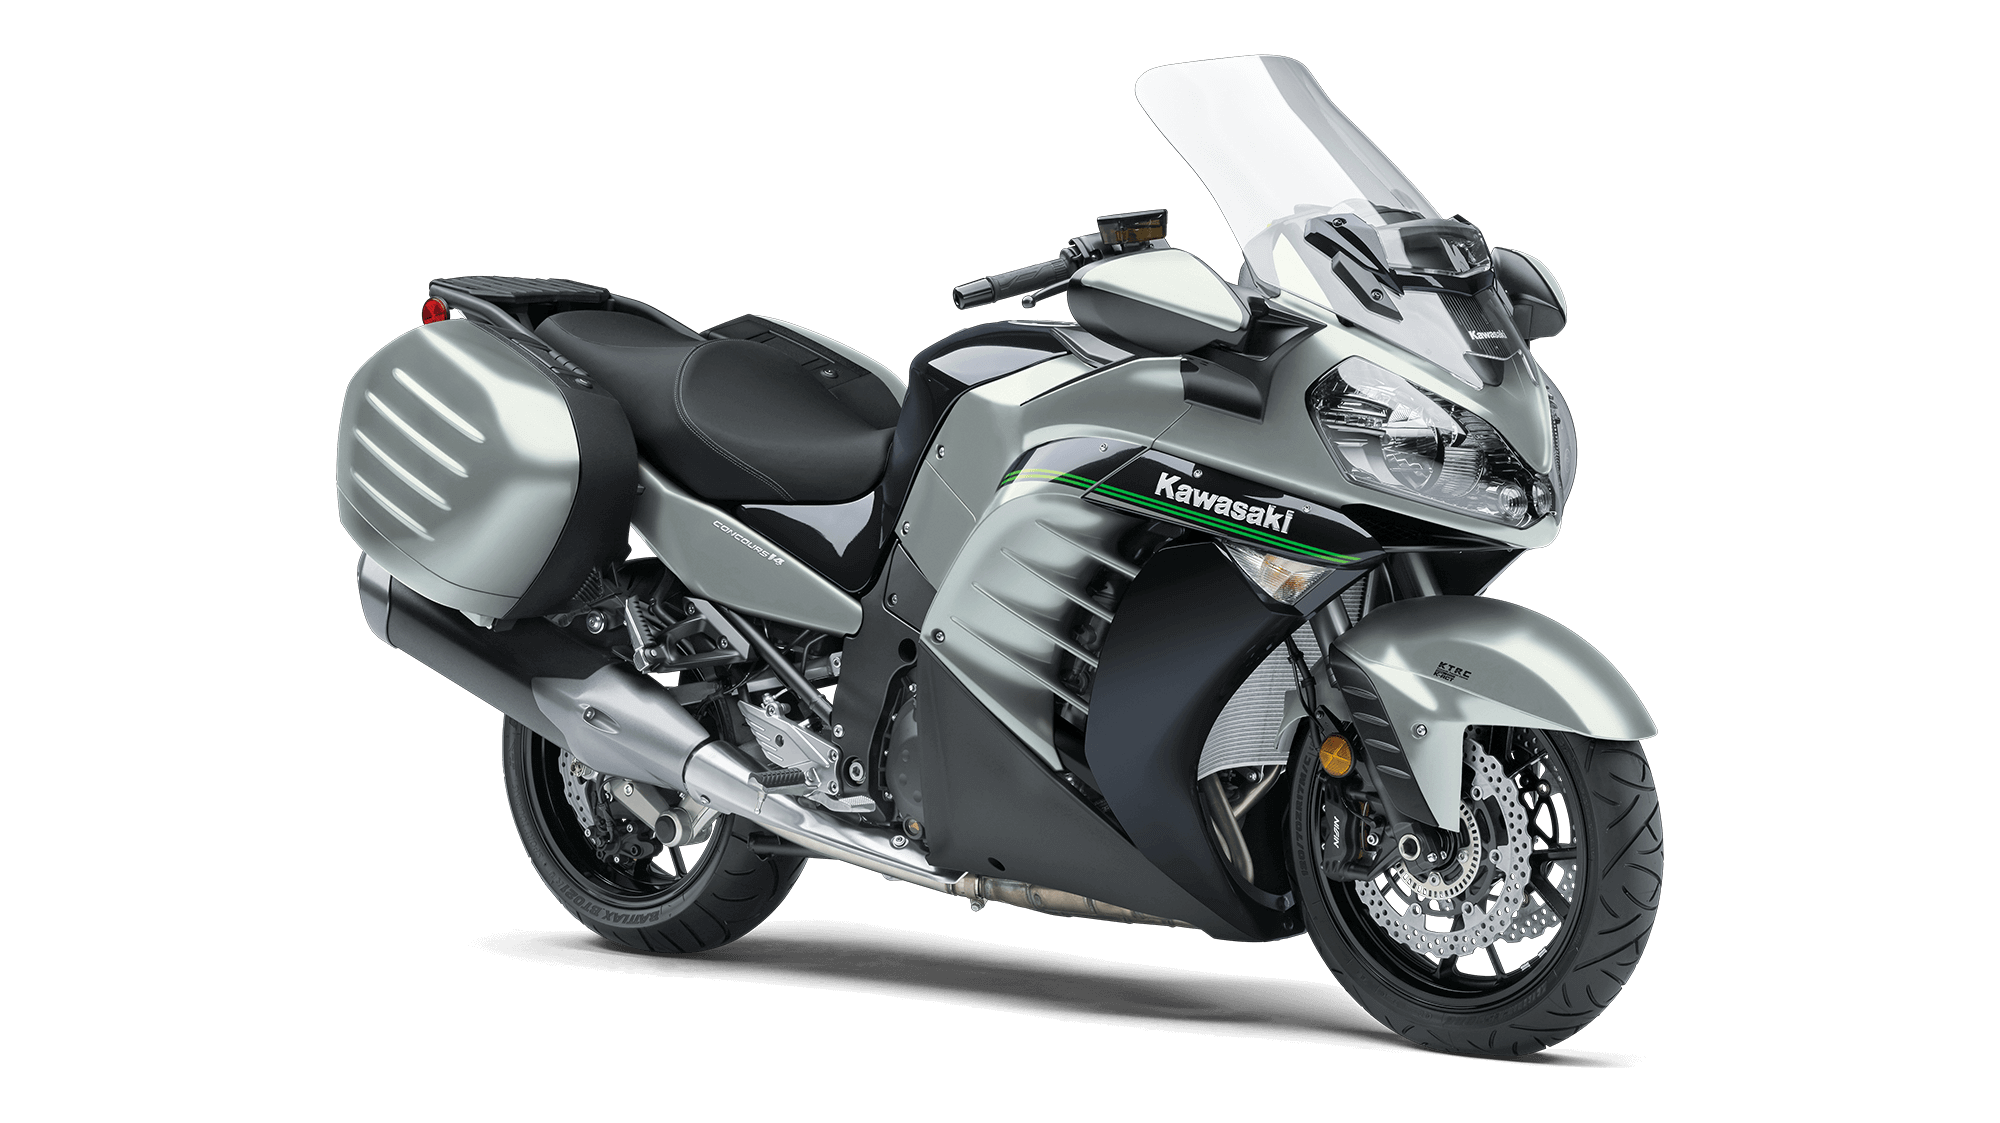 2019 CONCOURS®14 ABS CONCOURS® Motorcycle by Kawasaki